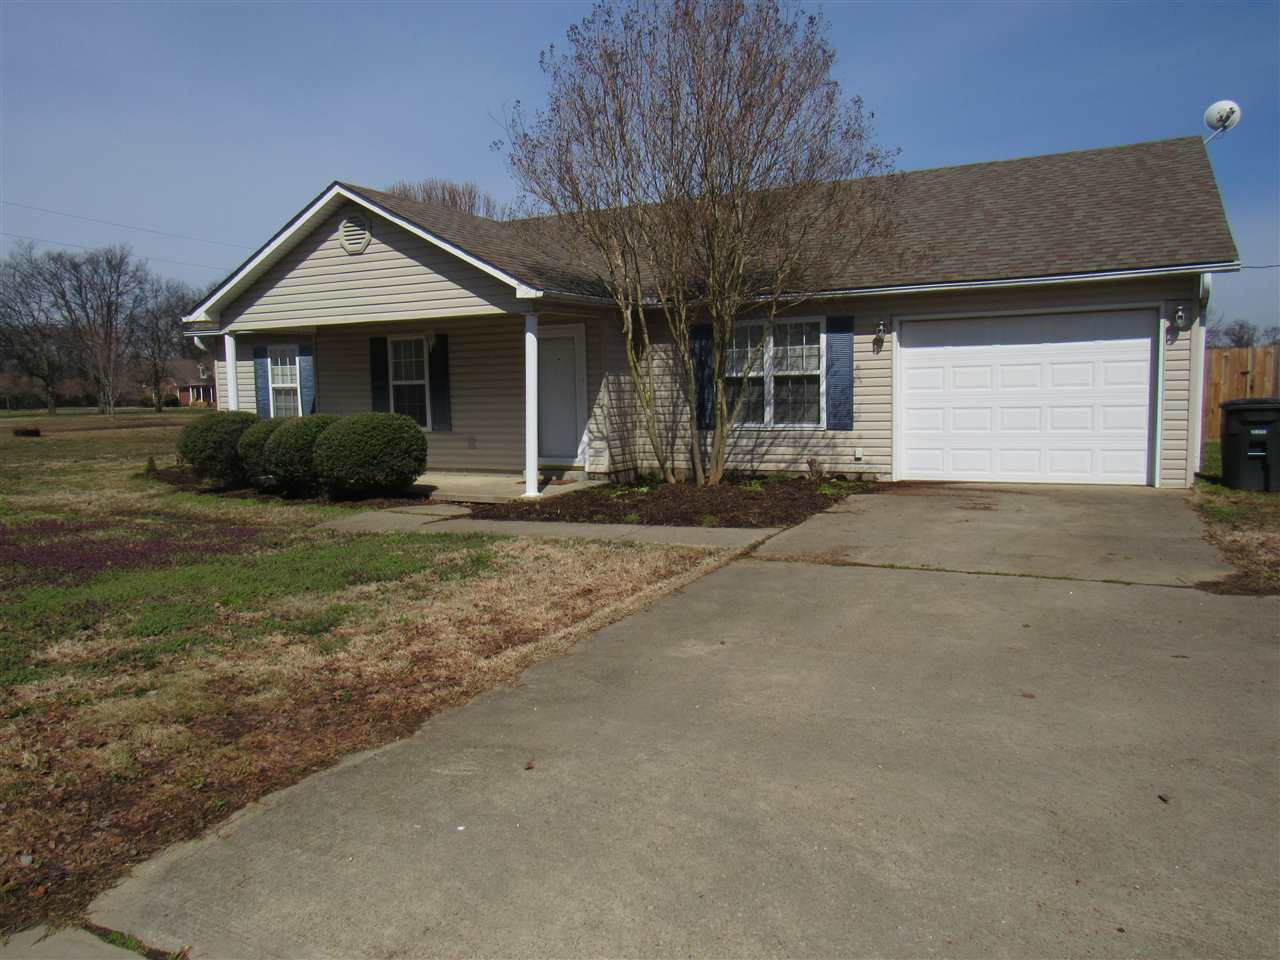 980 Forrester Road,Newbern,Tennessee 38059,3 Bedrooms Bedrooms,2 BathroomsBathrooms,Residential,980 Forrester Road,186987